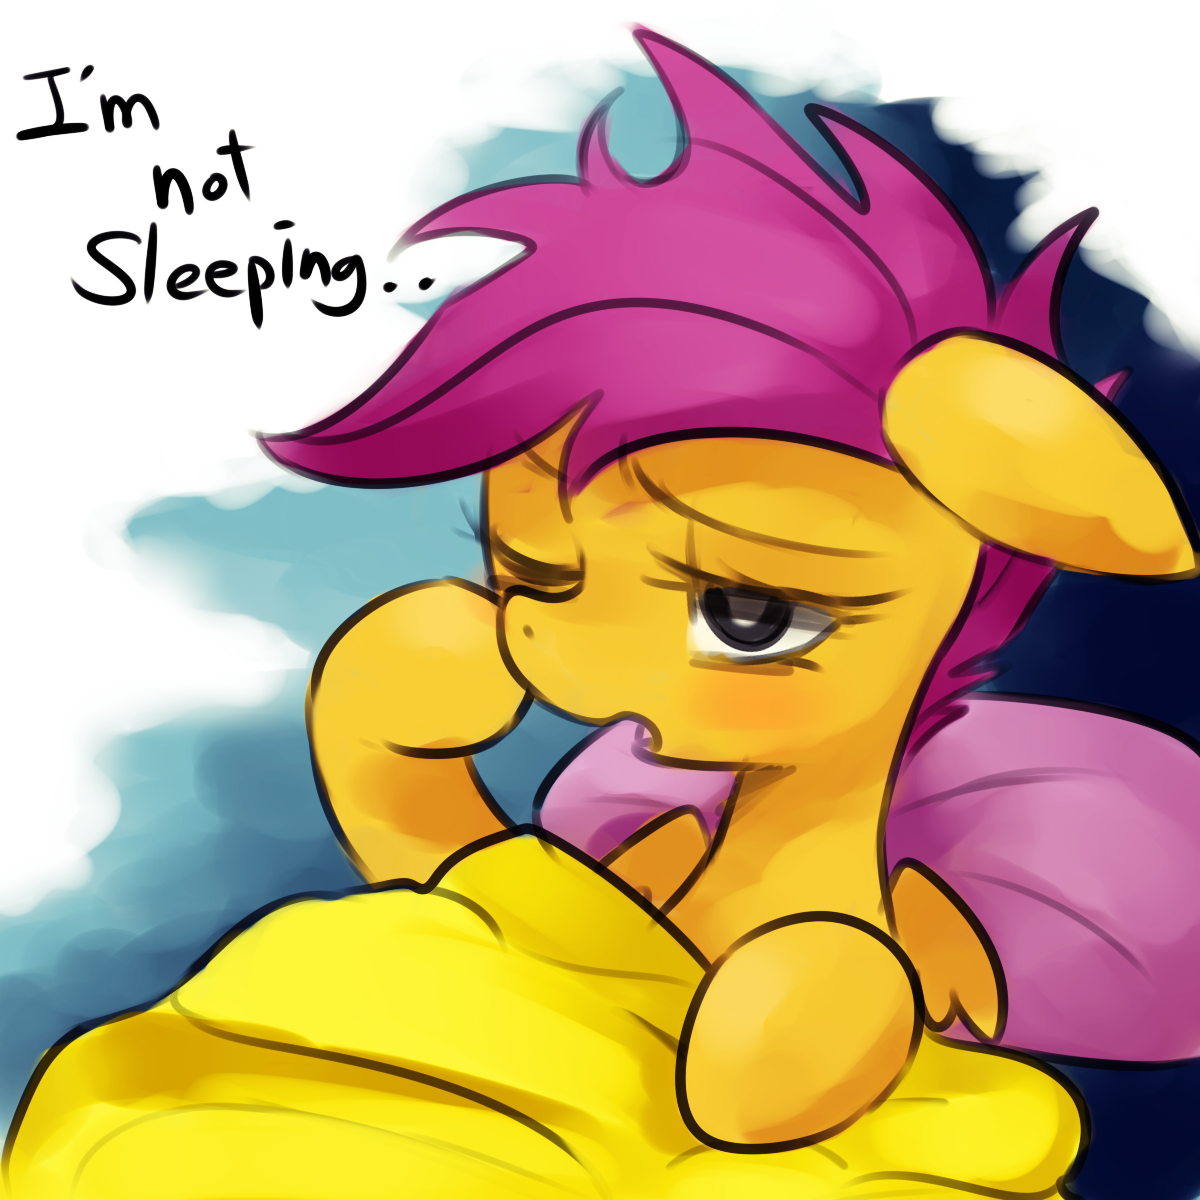 i m not sleeping   by marenlicious-d6xuh